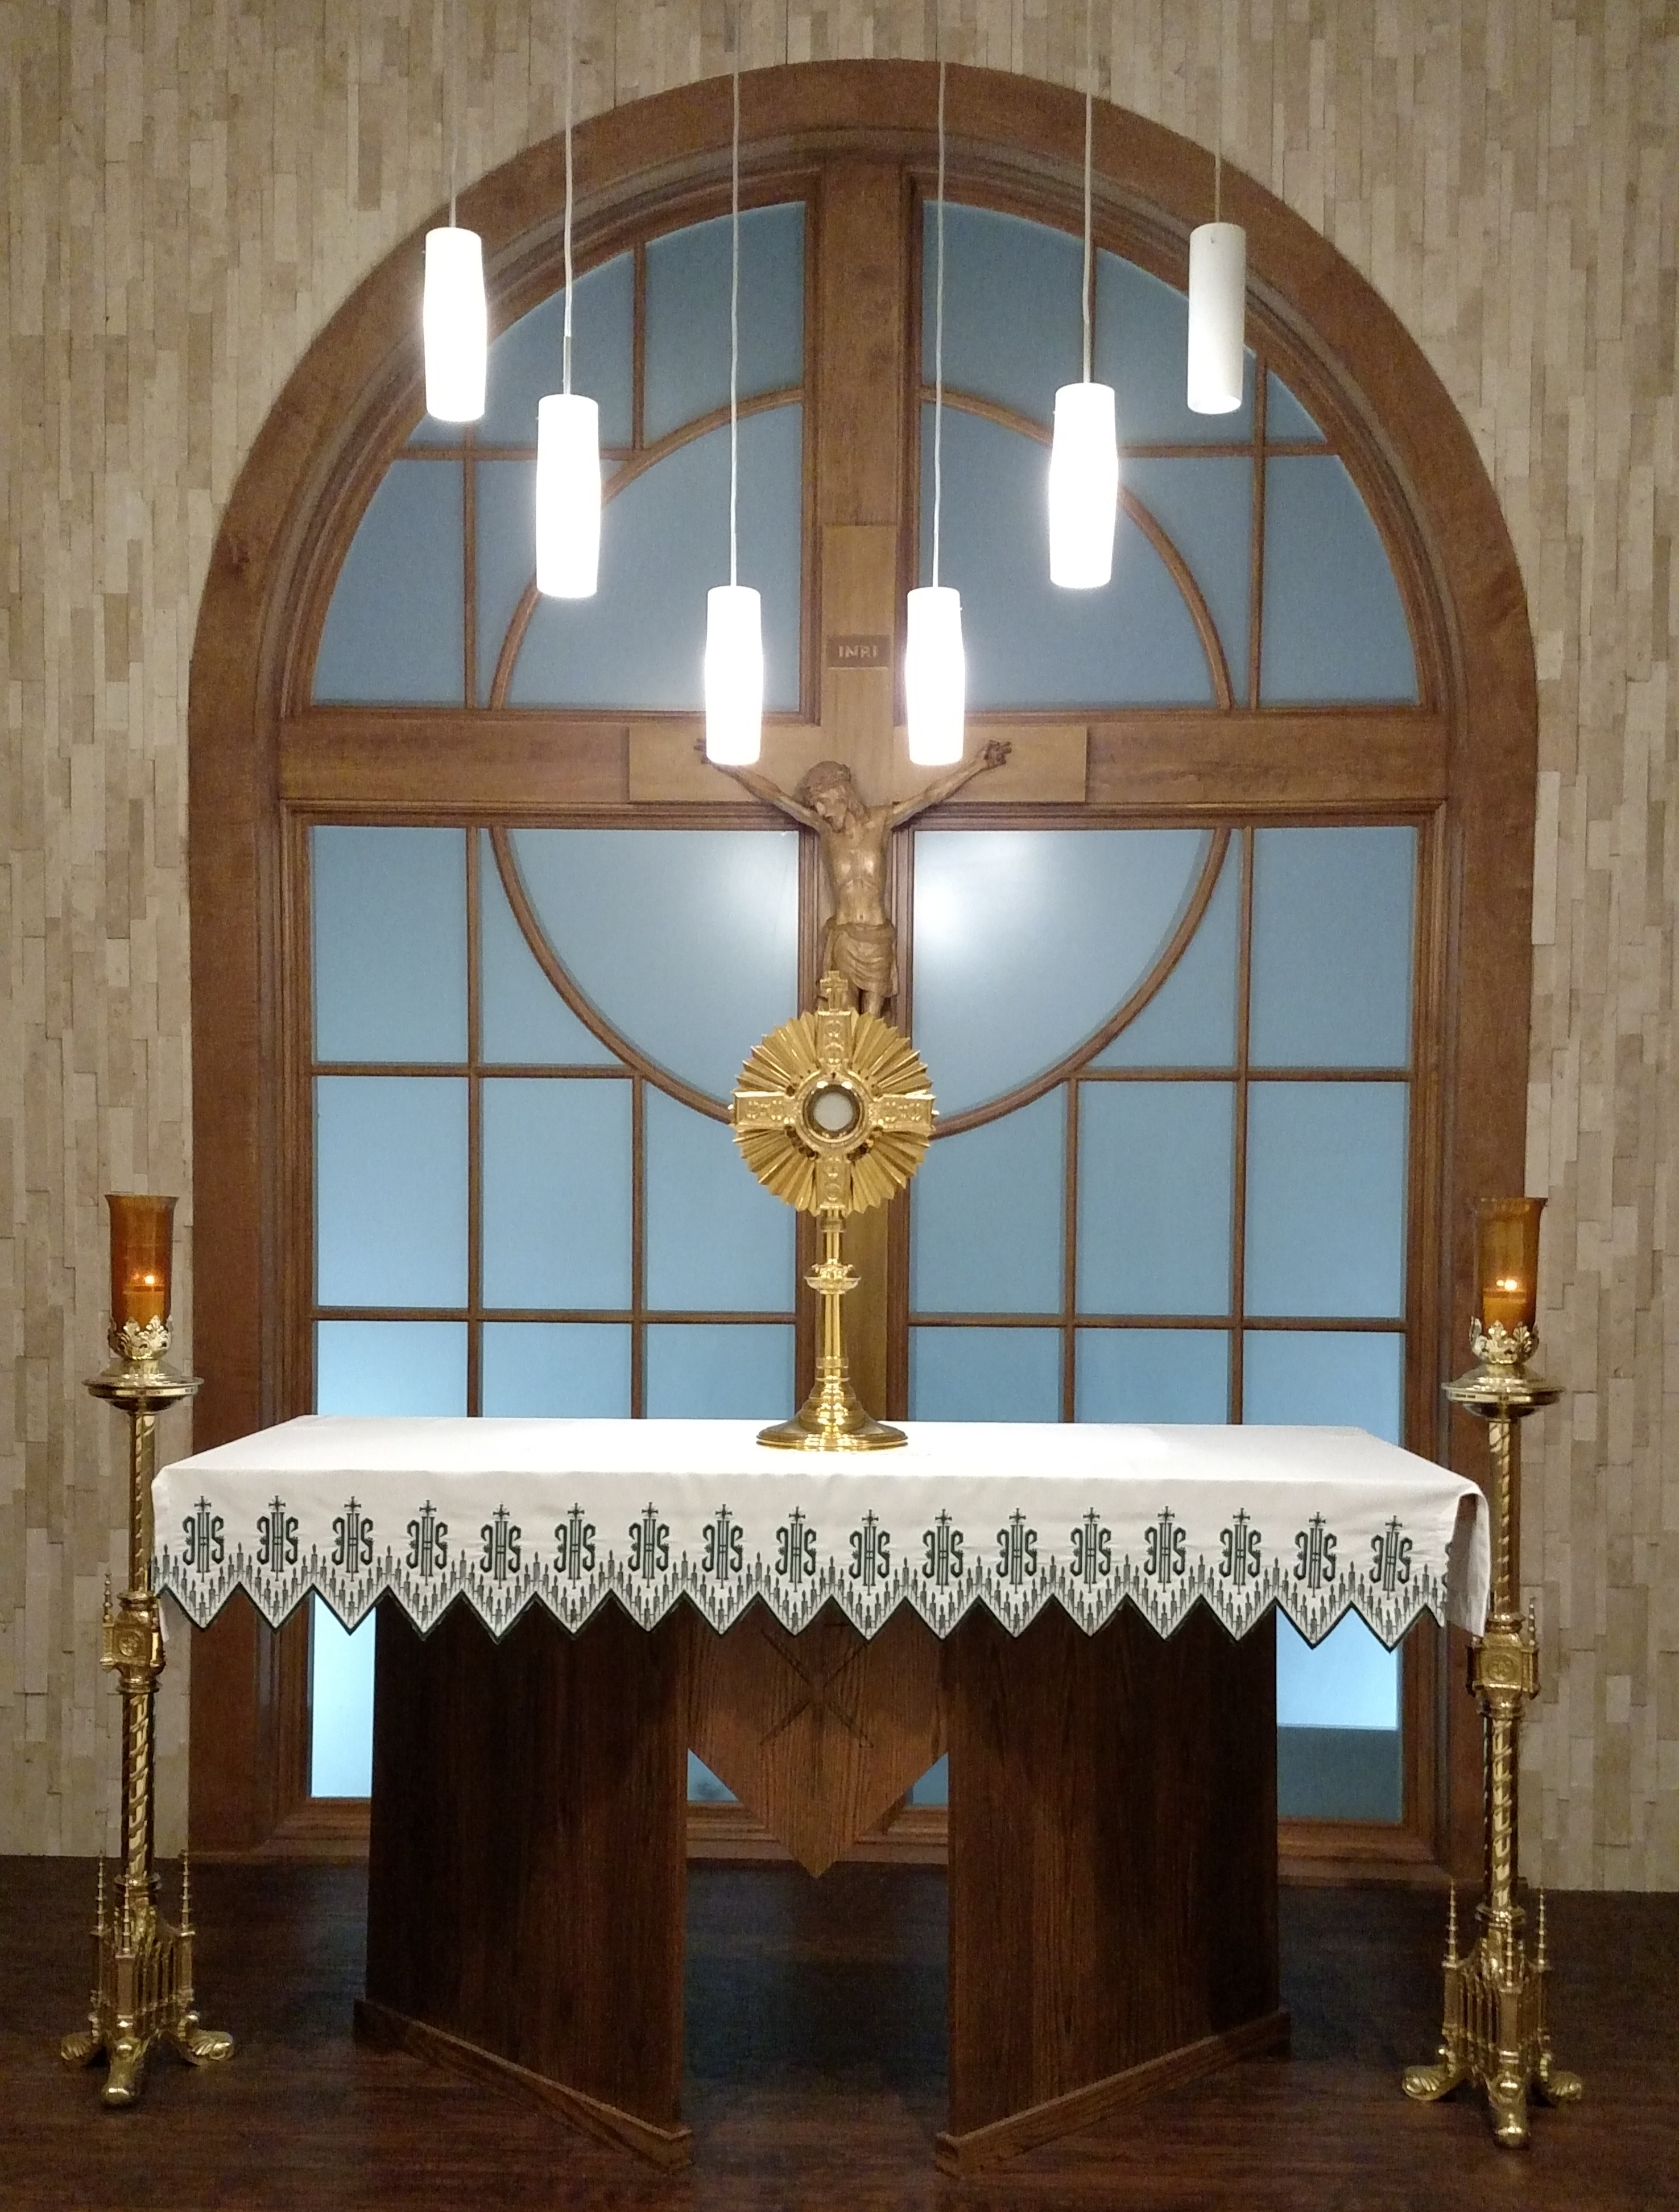 front view of adoration